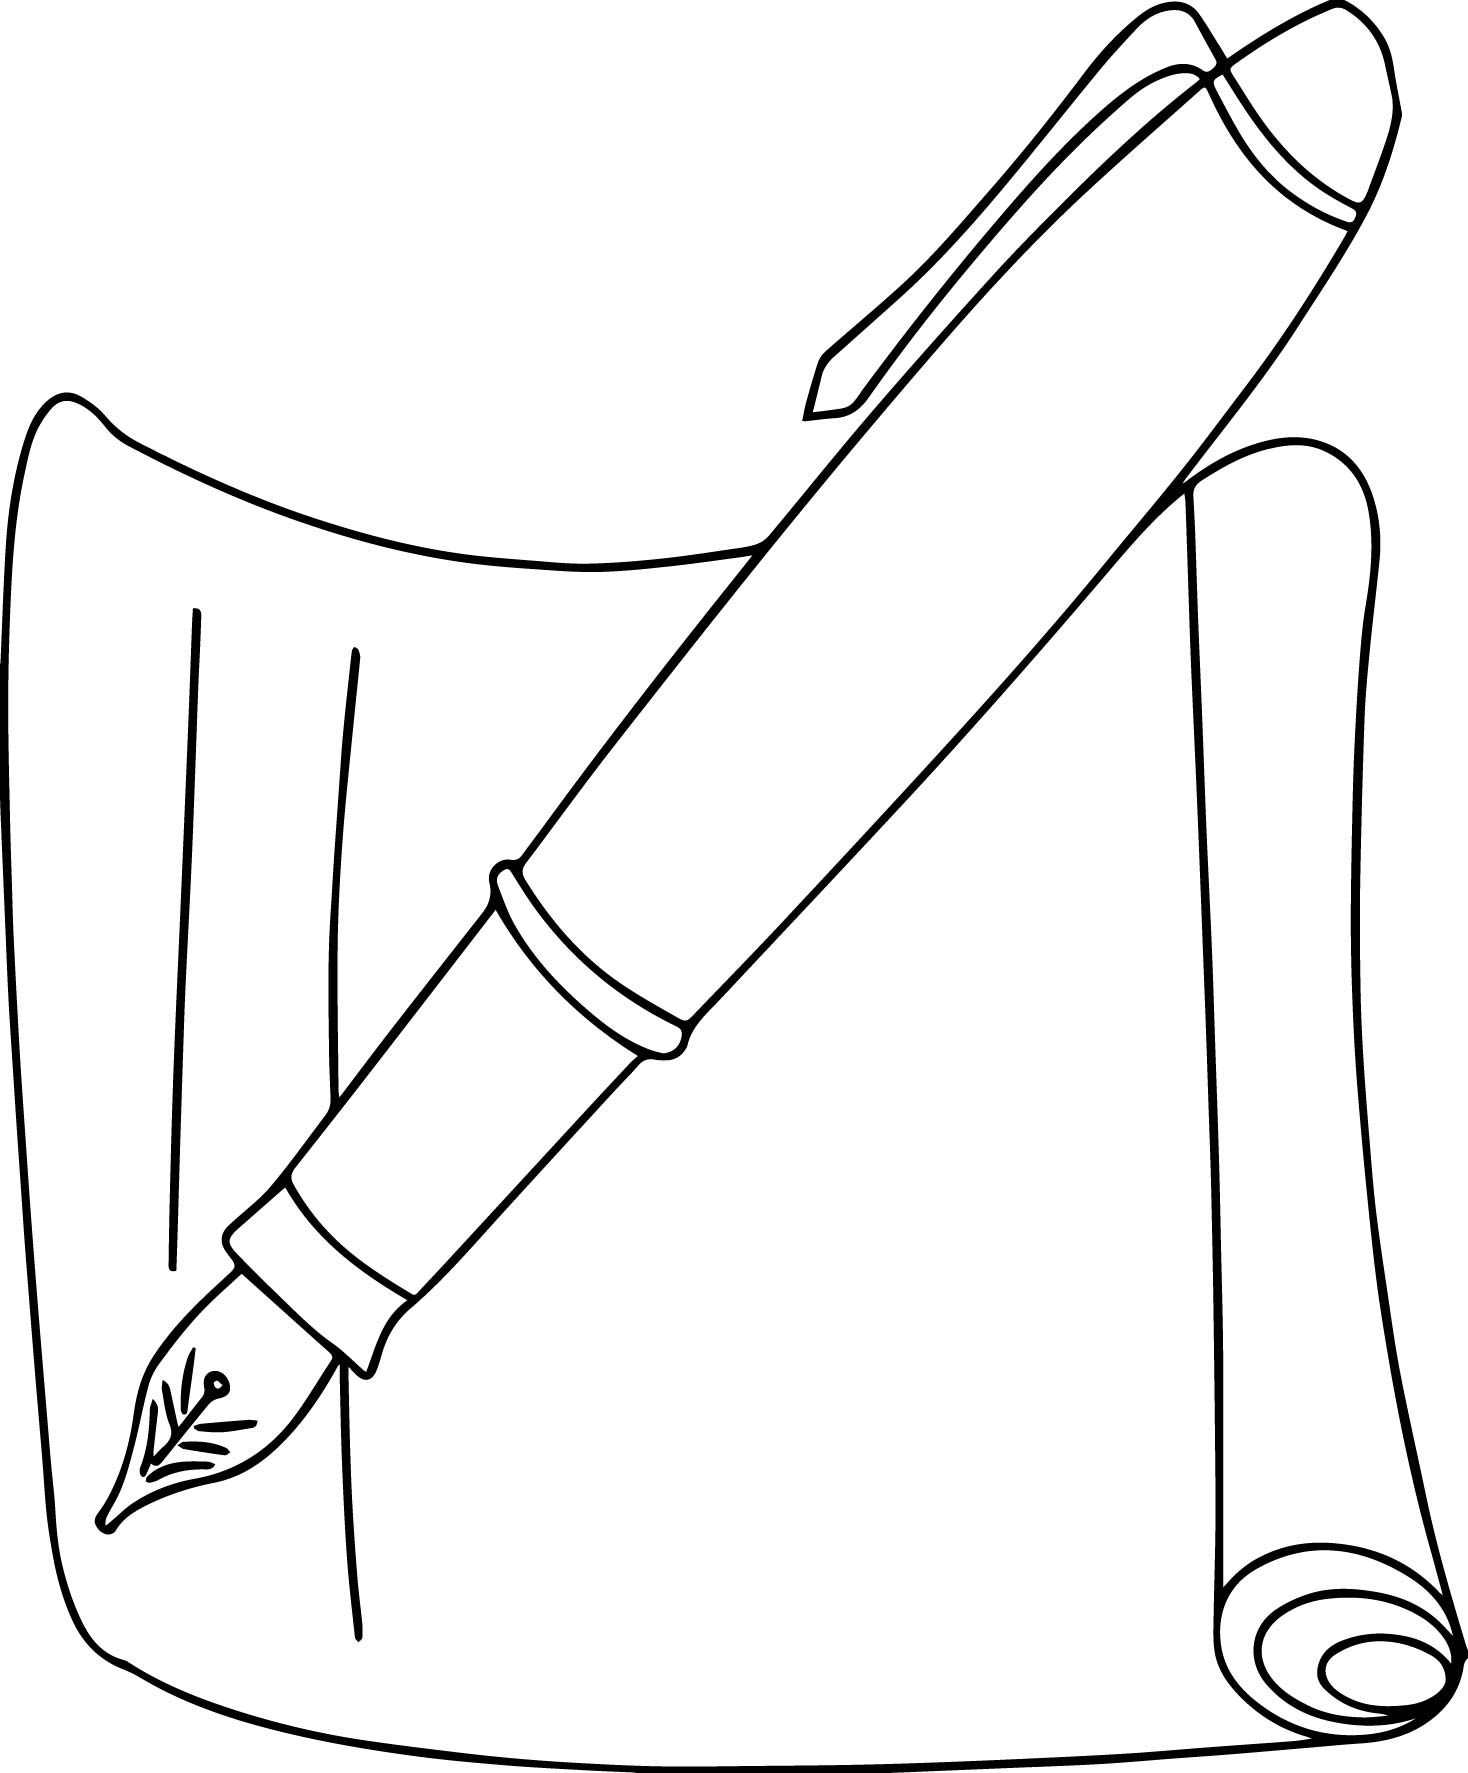 Calligraphy Pen And Paper Coloring Page